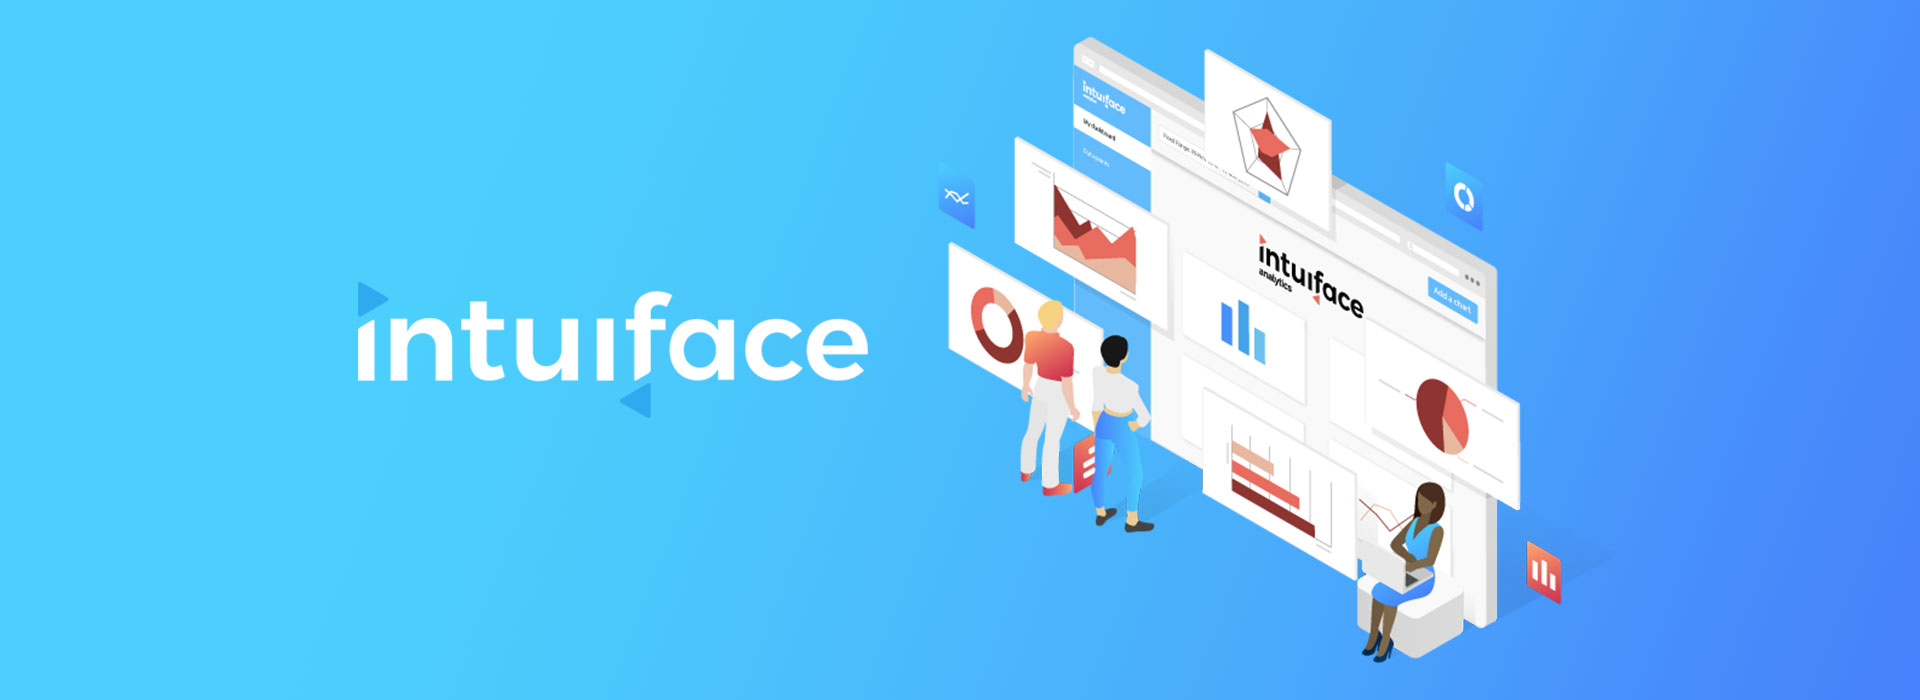 Intuiface Partner Media Solutions Switzerland